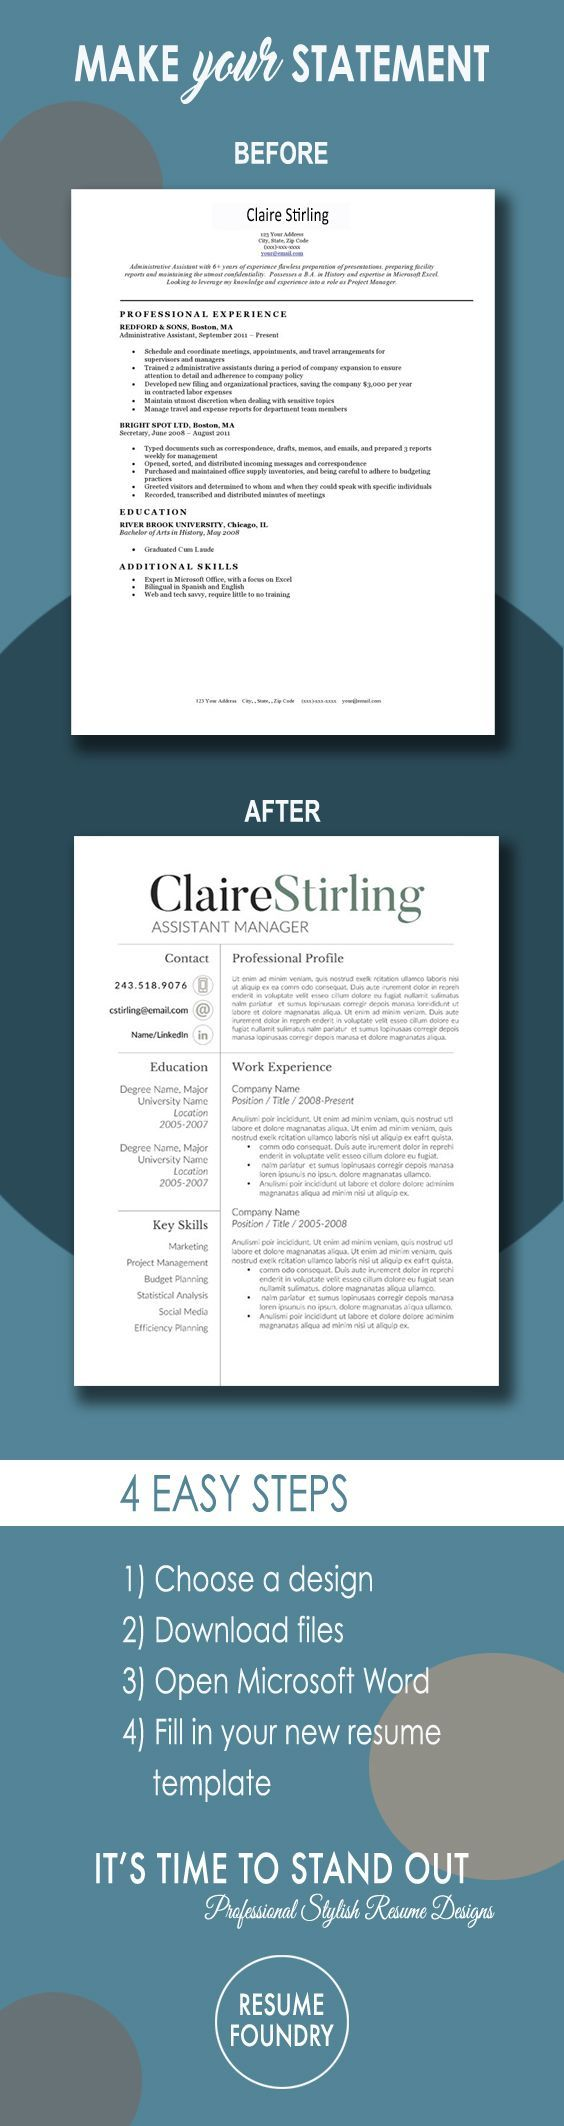 microsoft word letter of resignation%0A Modern Resume Template for Word     Page Resume   Cover Letter   Reference  Page   US Letter   INSTANT DOWNLOAD   Claire